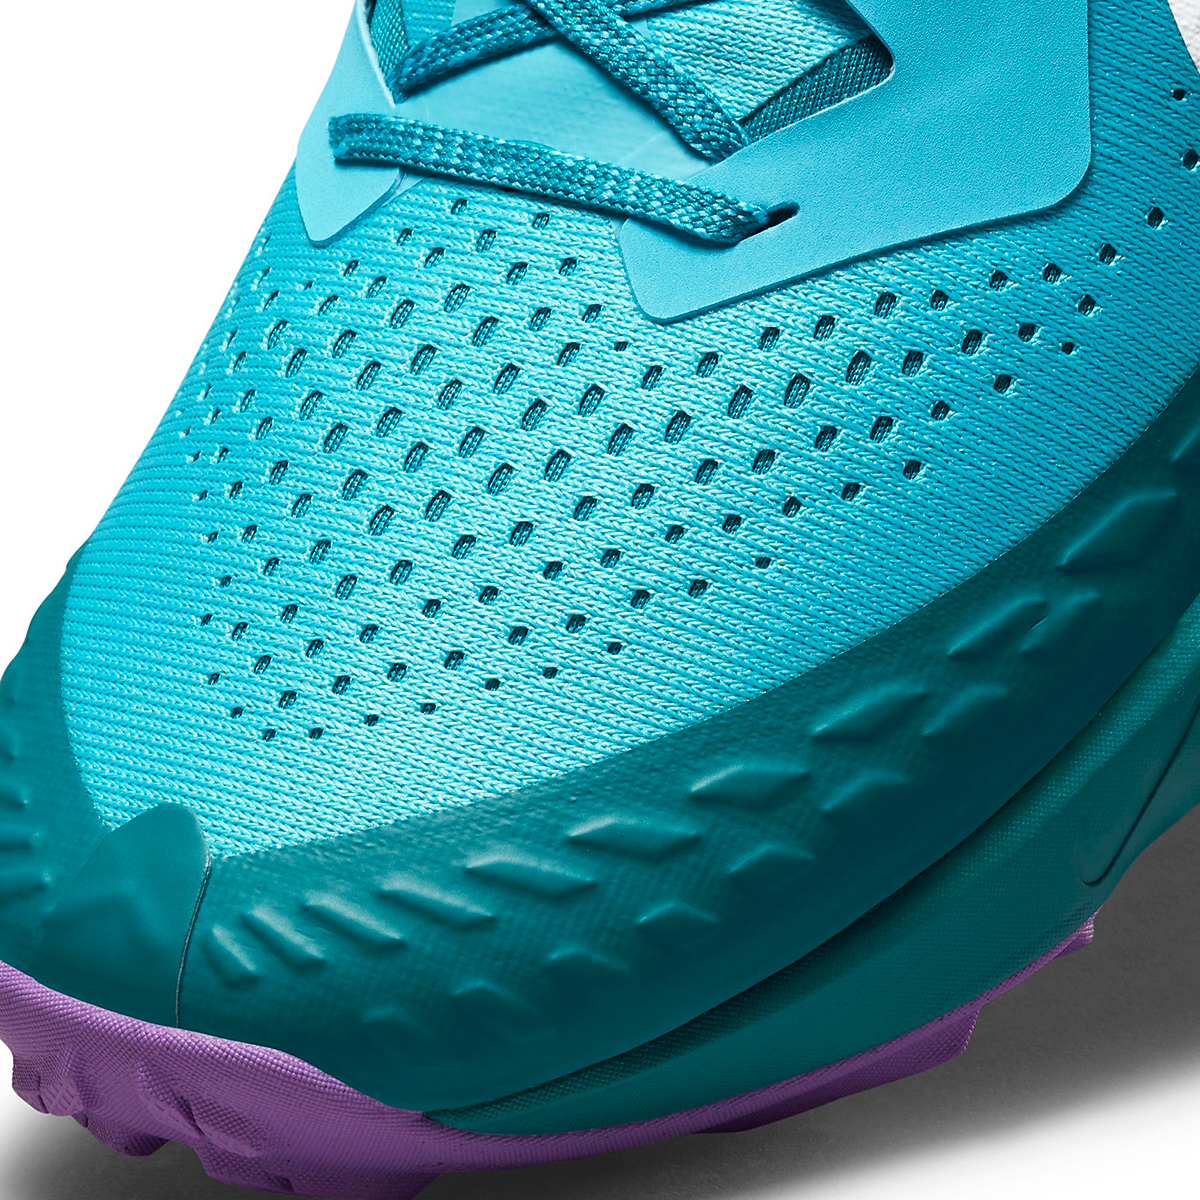 Men's Nike Air Zoom Terra Kiger 7 Trail Running Shoe - Color: Turquoise Blue/White/Mystic Teal - Size: 6 - Width: Regular, Turquoise Blue/White/Mystic Teal, large, image 6